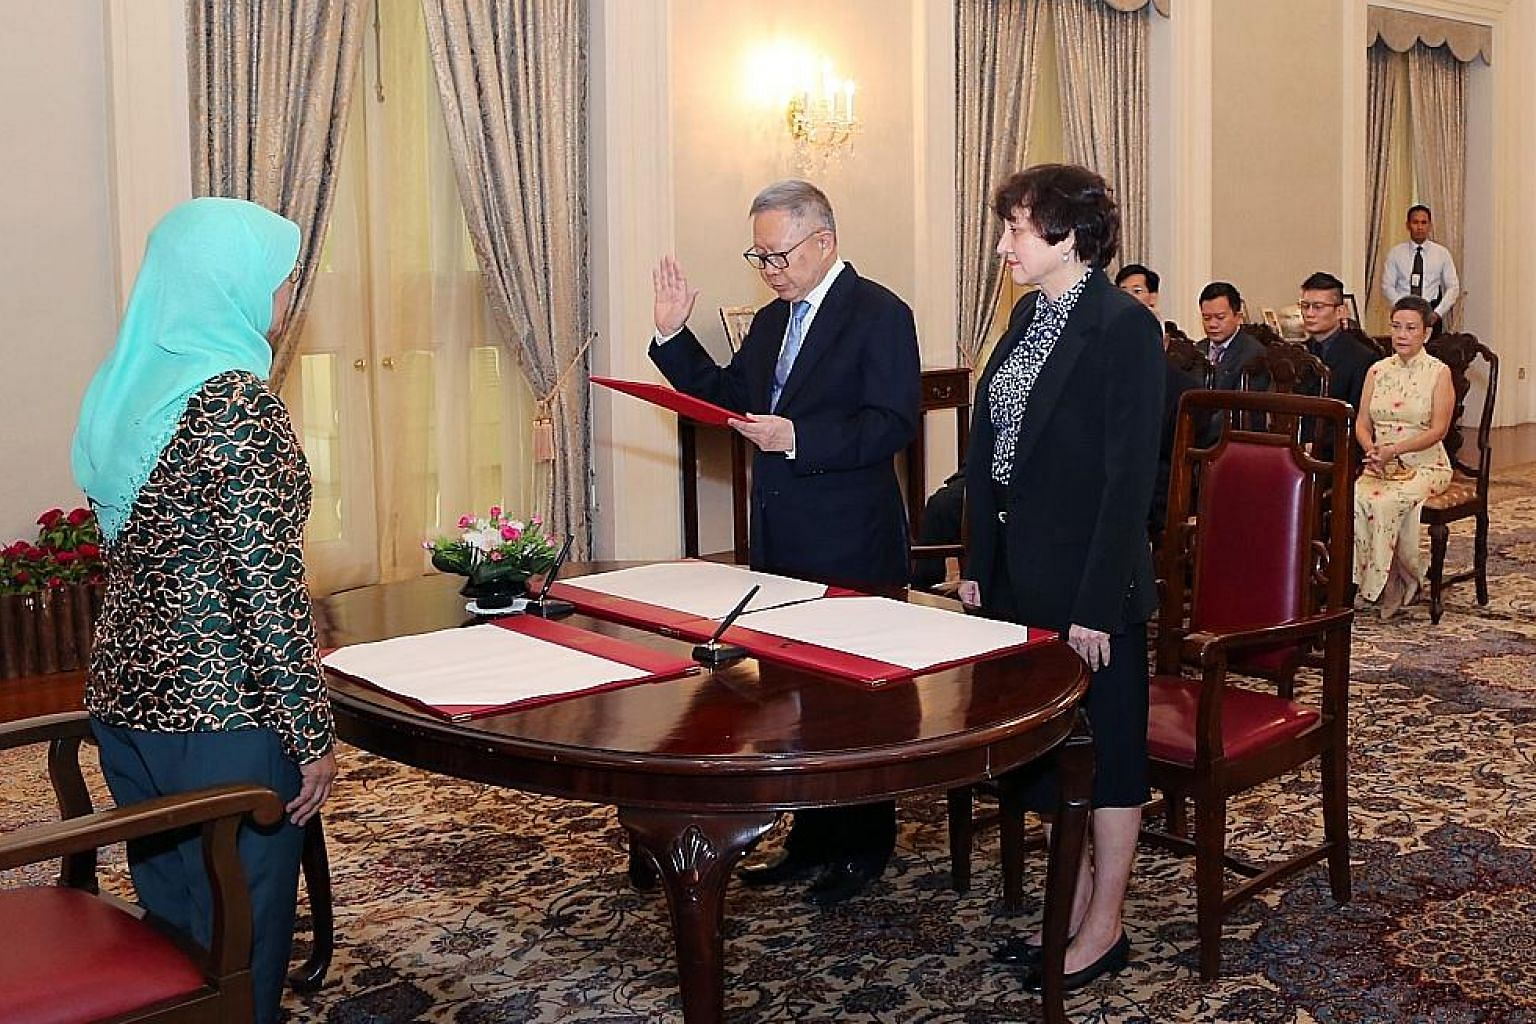 Mr Eddie Teo, seen here with President Halimah Yacob and Justice Judith Prakash, being sworn in as a member of the Council of Presidential Advisers yesterday.